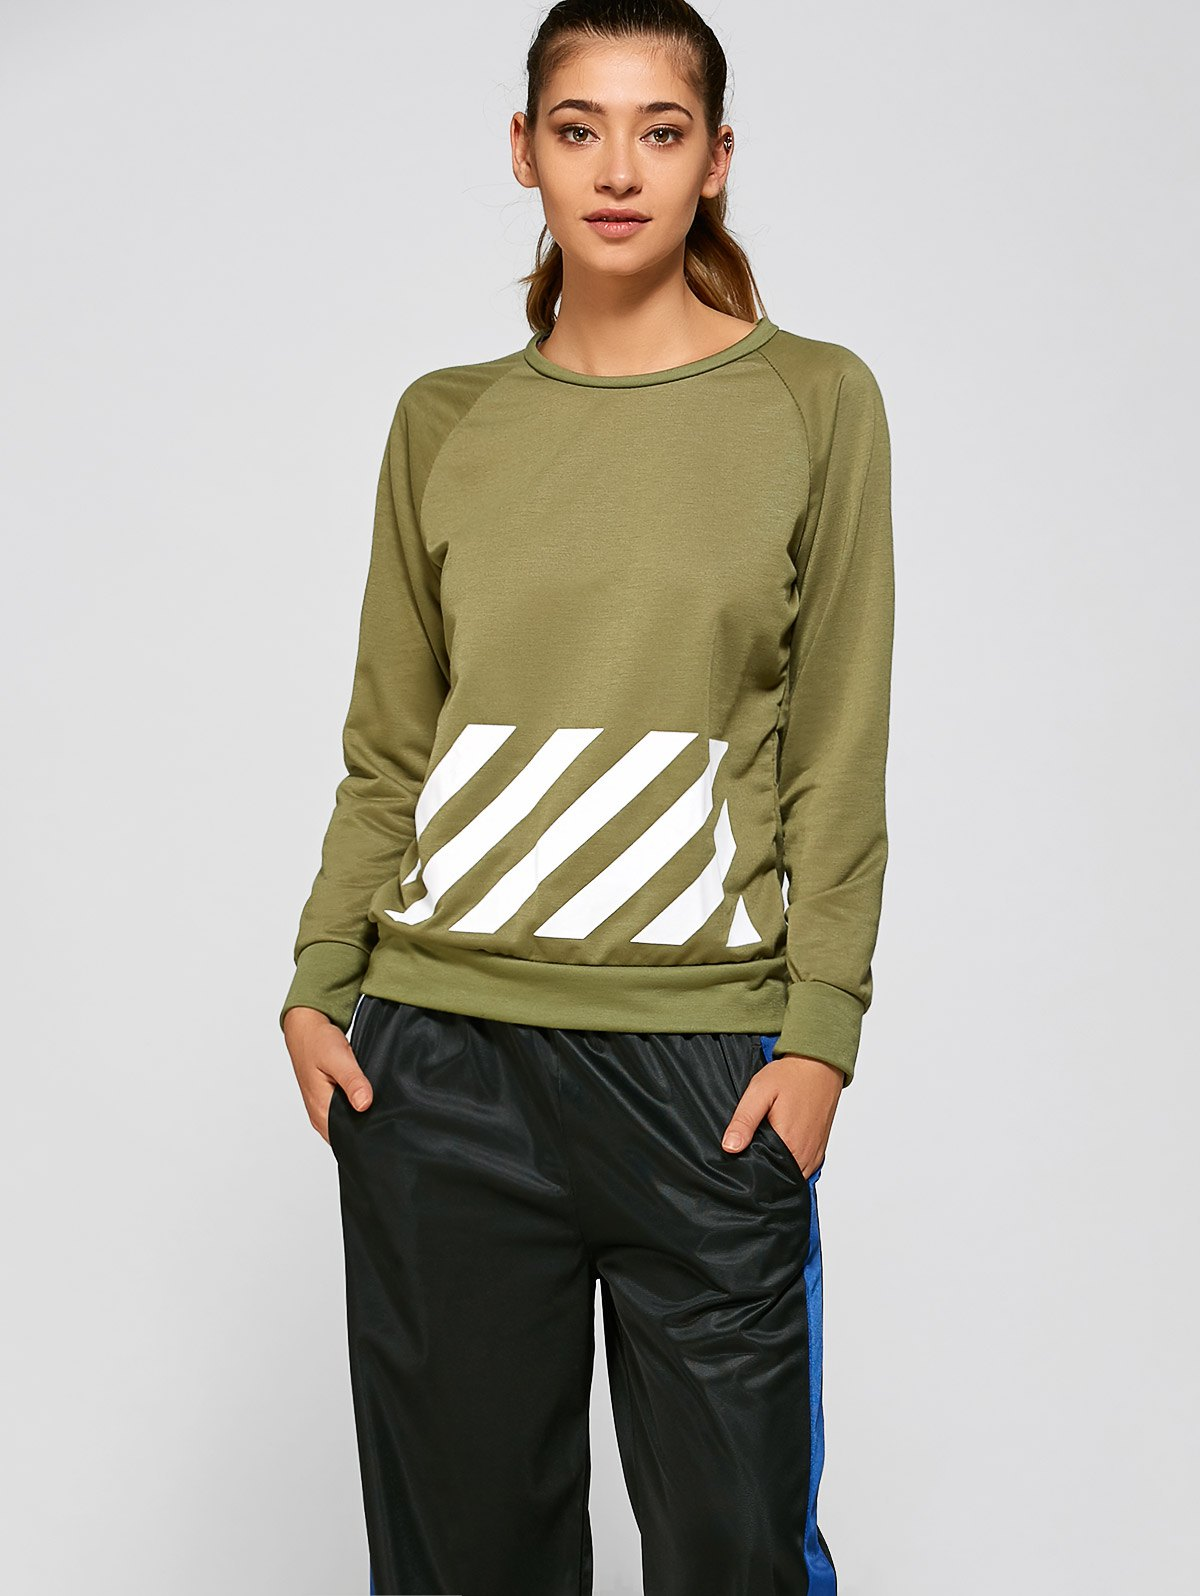 BF Style Printed Sports SweatshirtClothes<br><br><br>Size: L<br>Color: GREEN